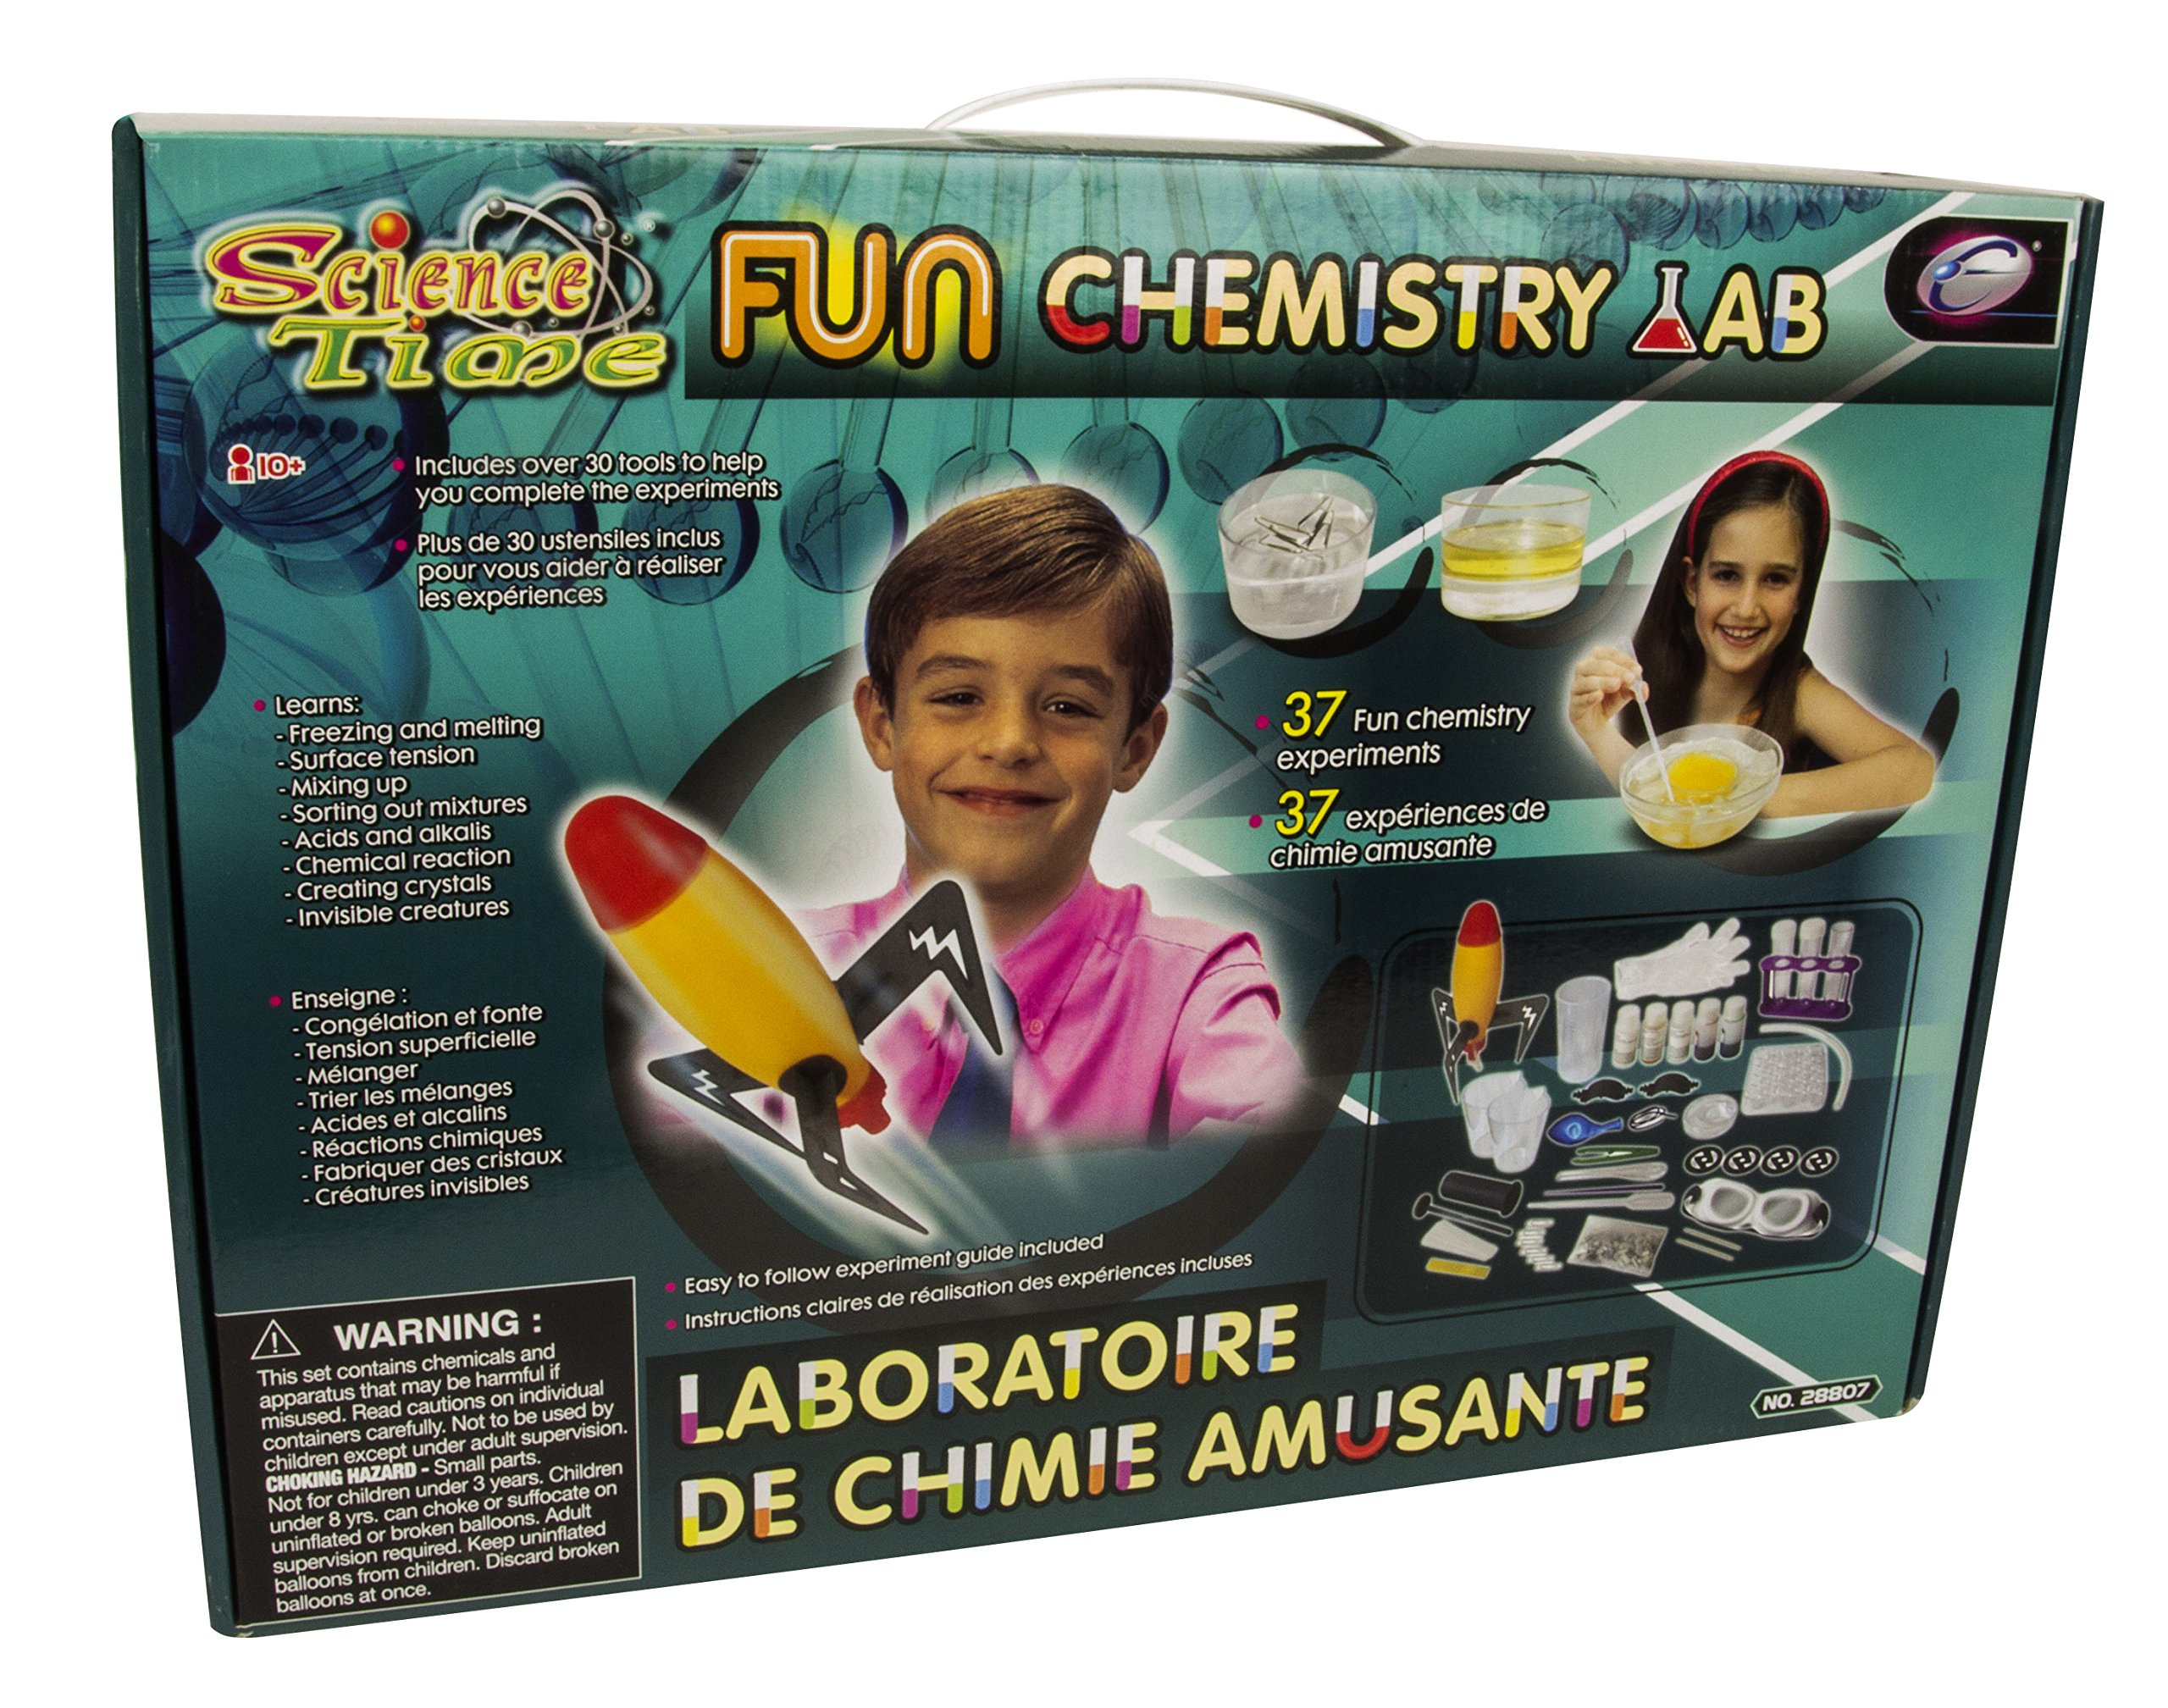 Science Time Fun Chemistry Lab STEM Interactive Multi-Experiment Kit For Kids by Scientifics Direct